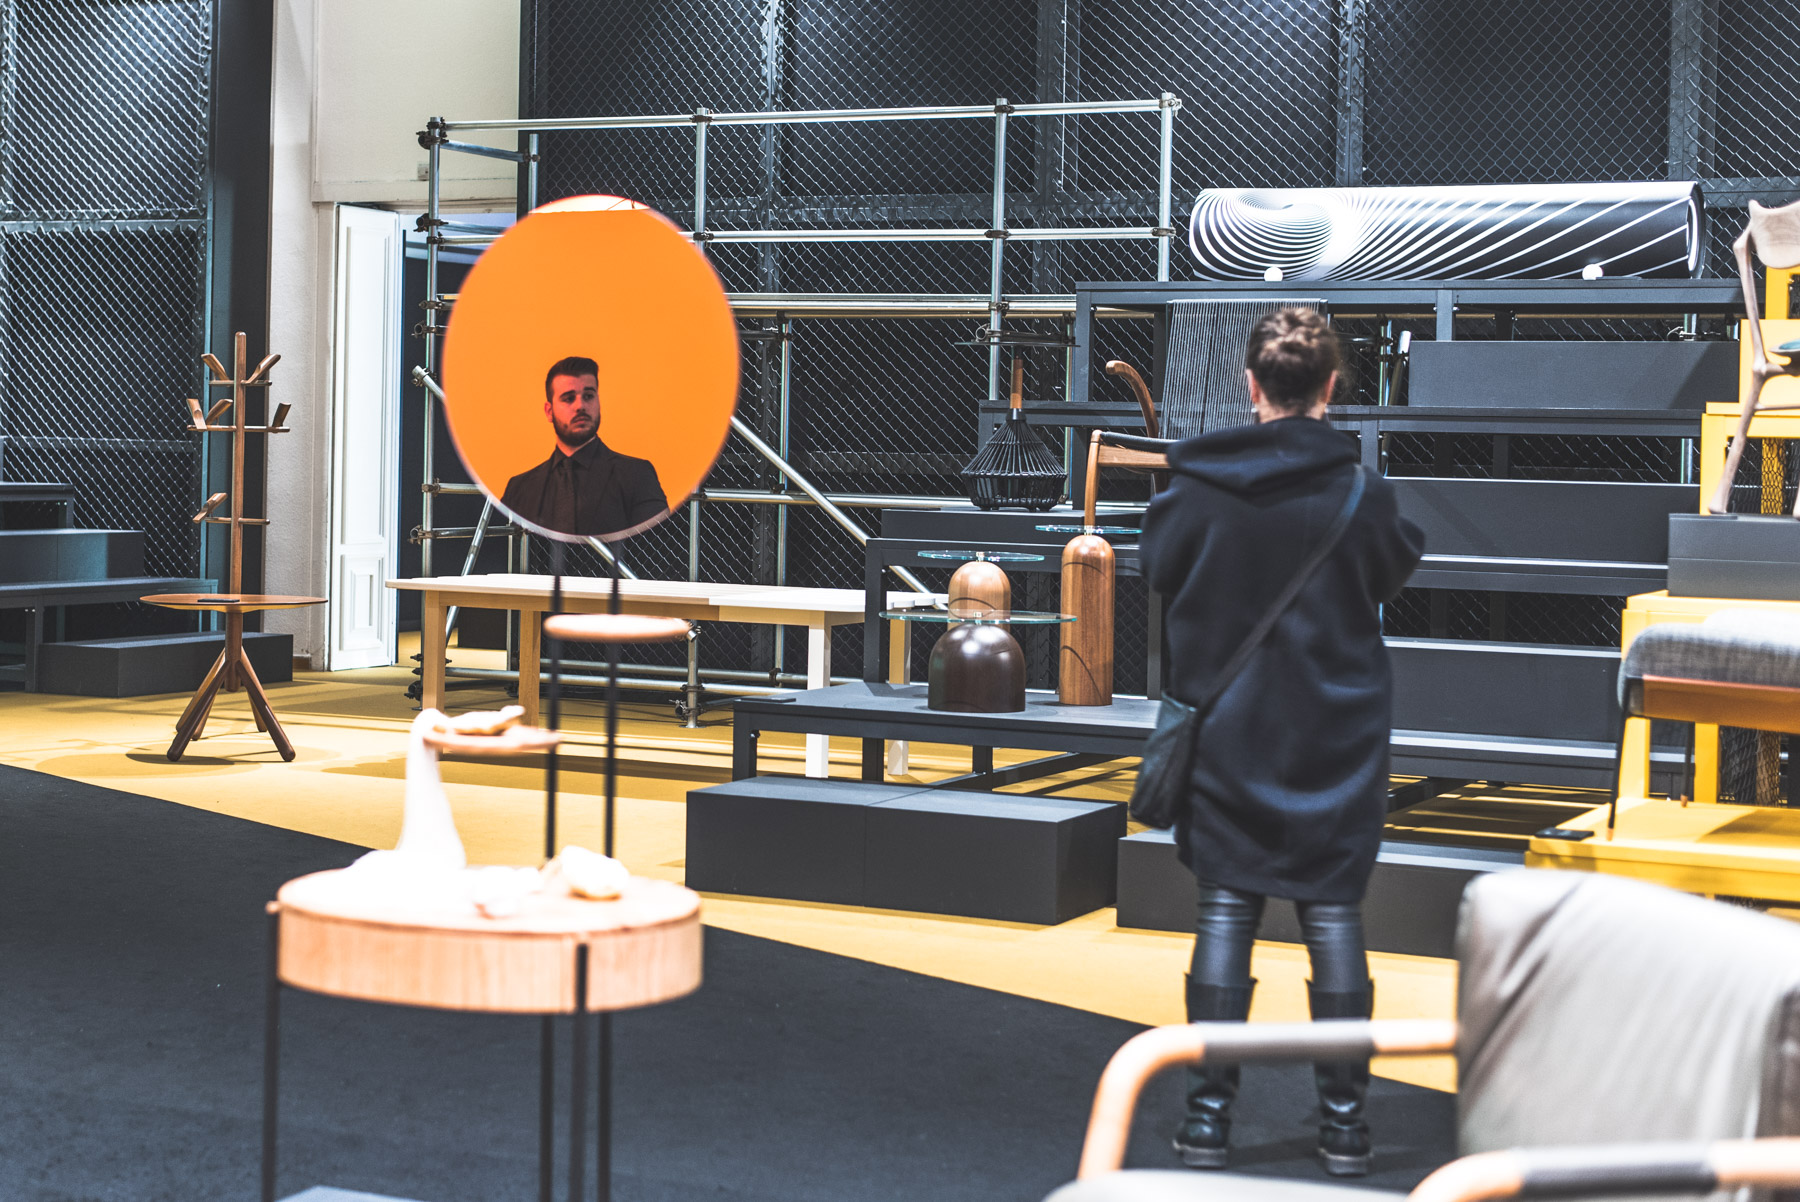 A photograph showing the reflection of a man in a mirror and somebody watching furniture during Fuorisalone Milan Design Week 2019